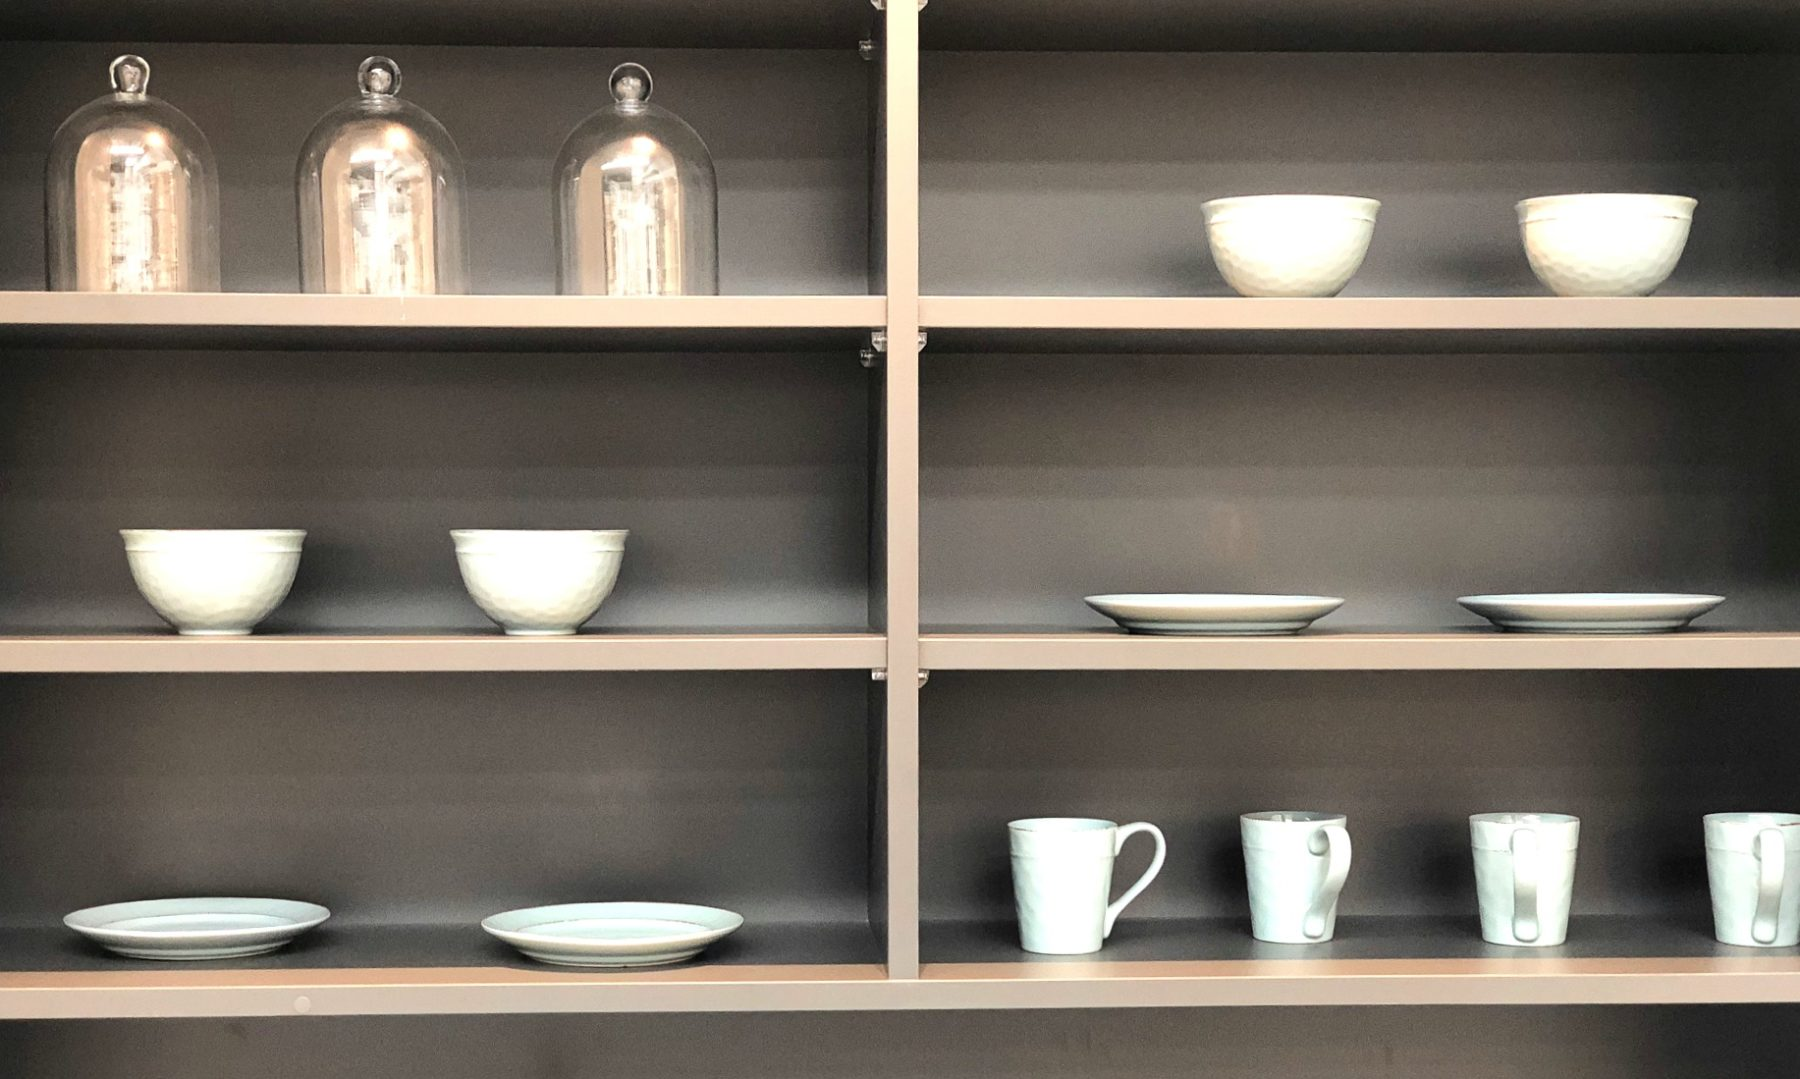 styled kitchen shelves with cups and bowls